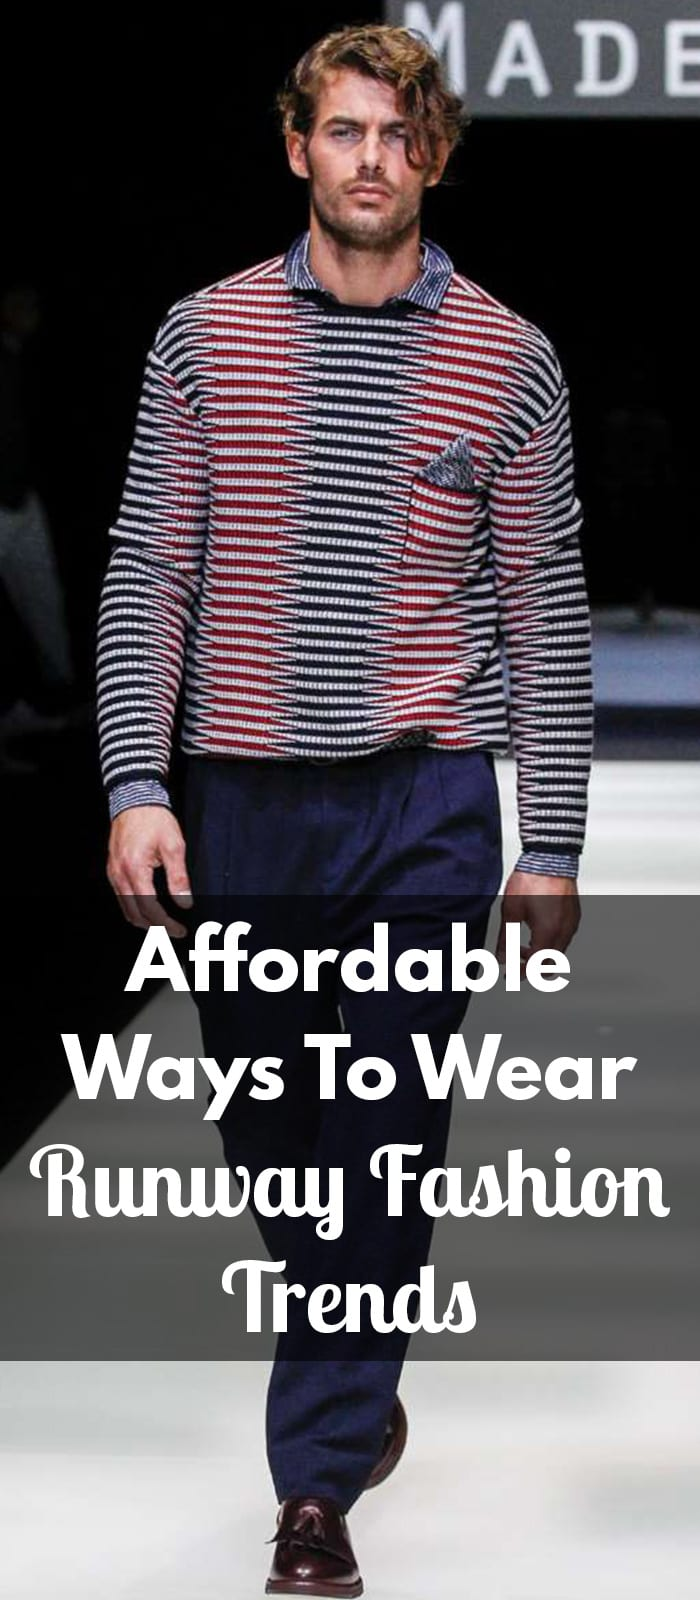 Affordable Ways To Wear Runway Fashion Trends